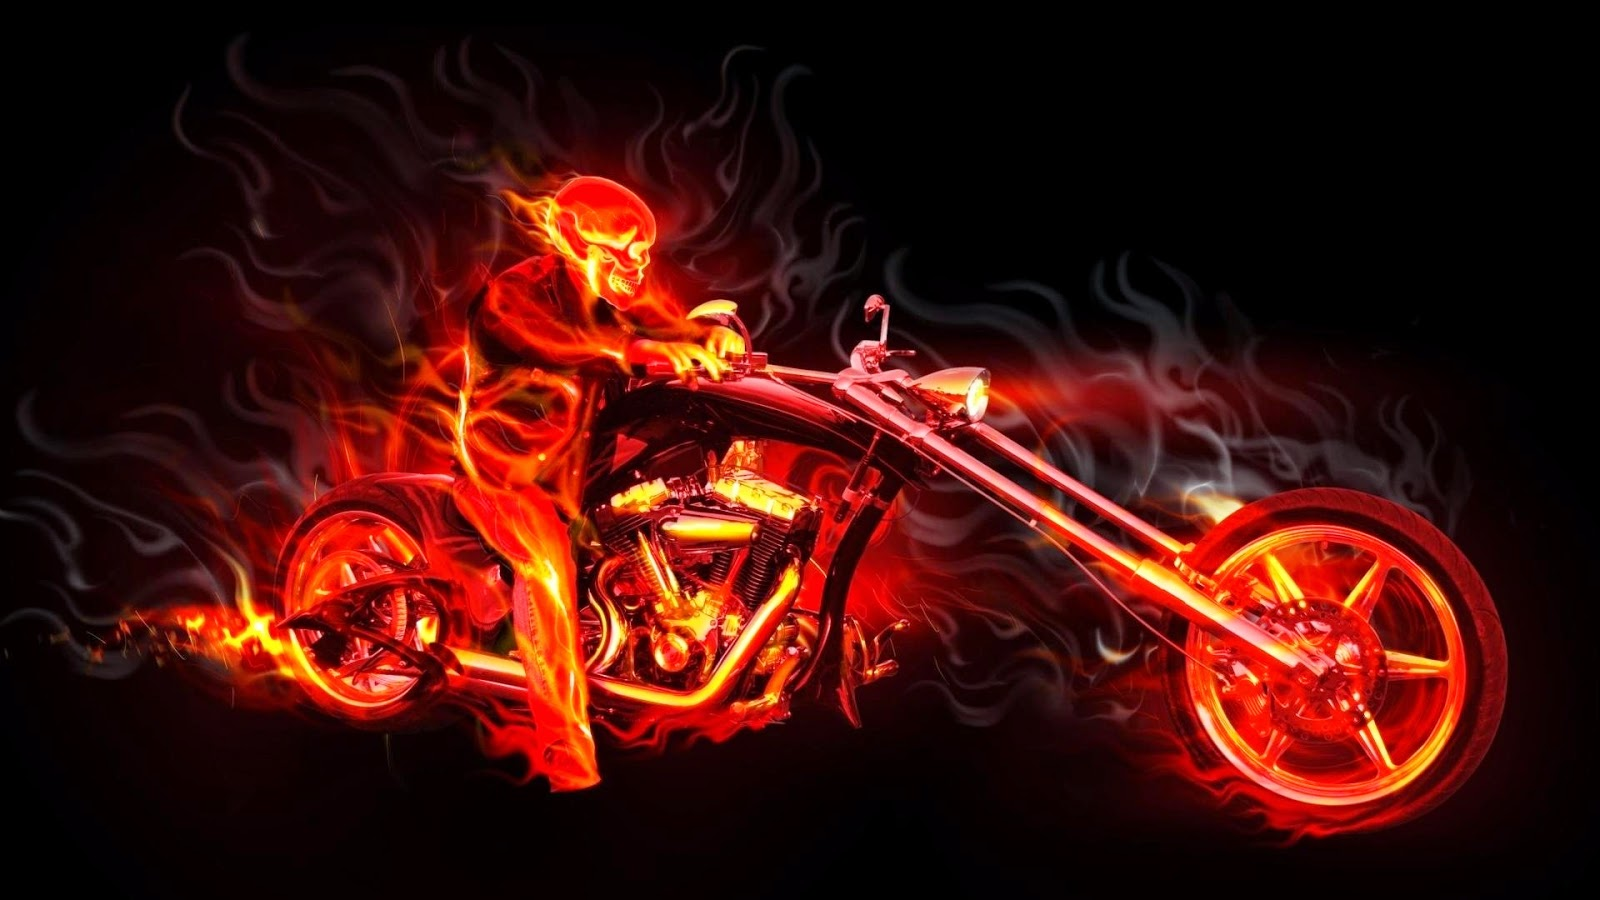 Wallpaper Pc Hd 4k Wallpaper For You Wallpaper Motogp